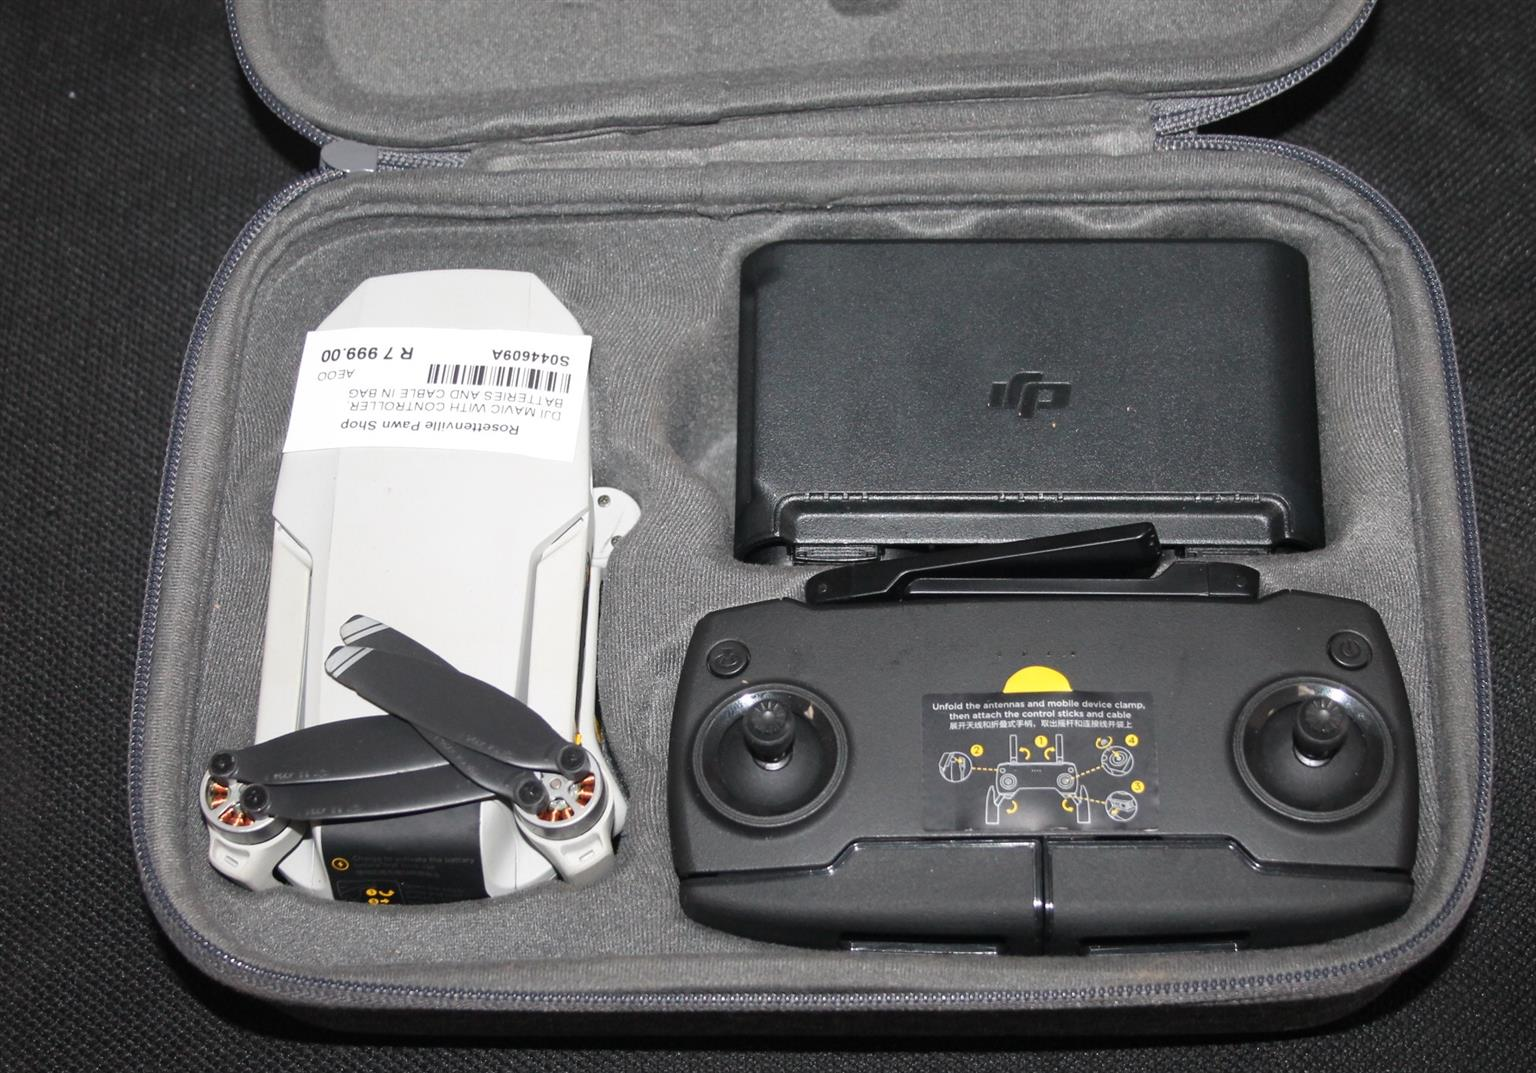 dji mavic with controller battries and cables in bag S044609A